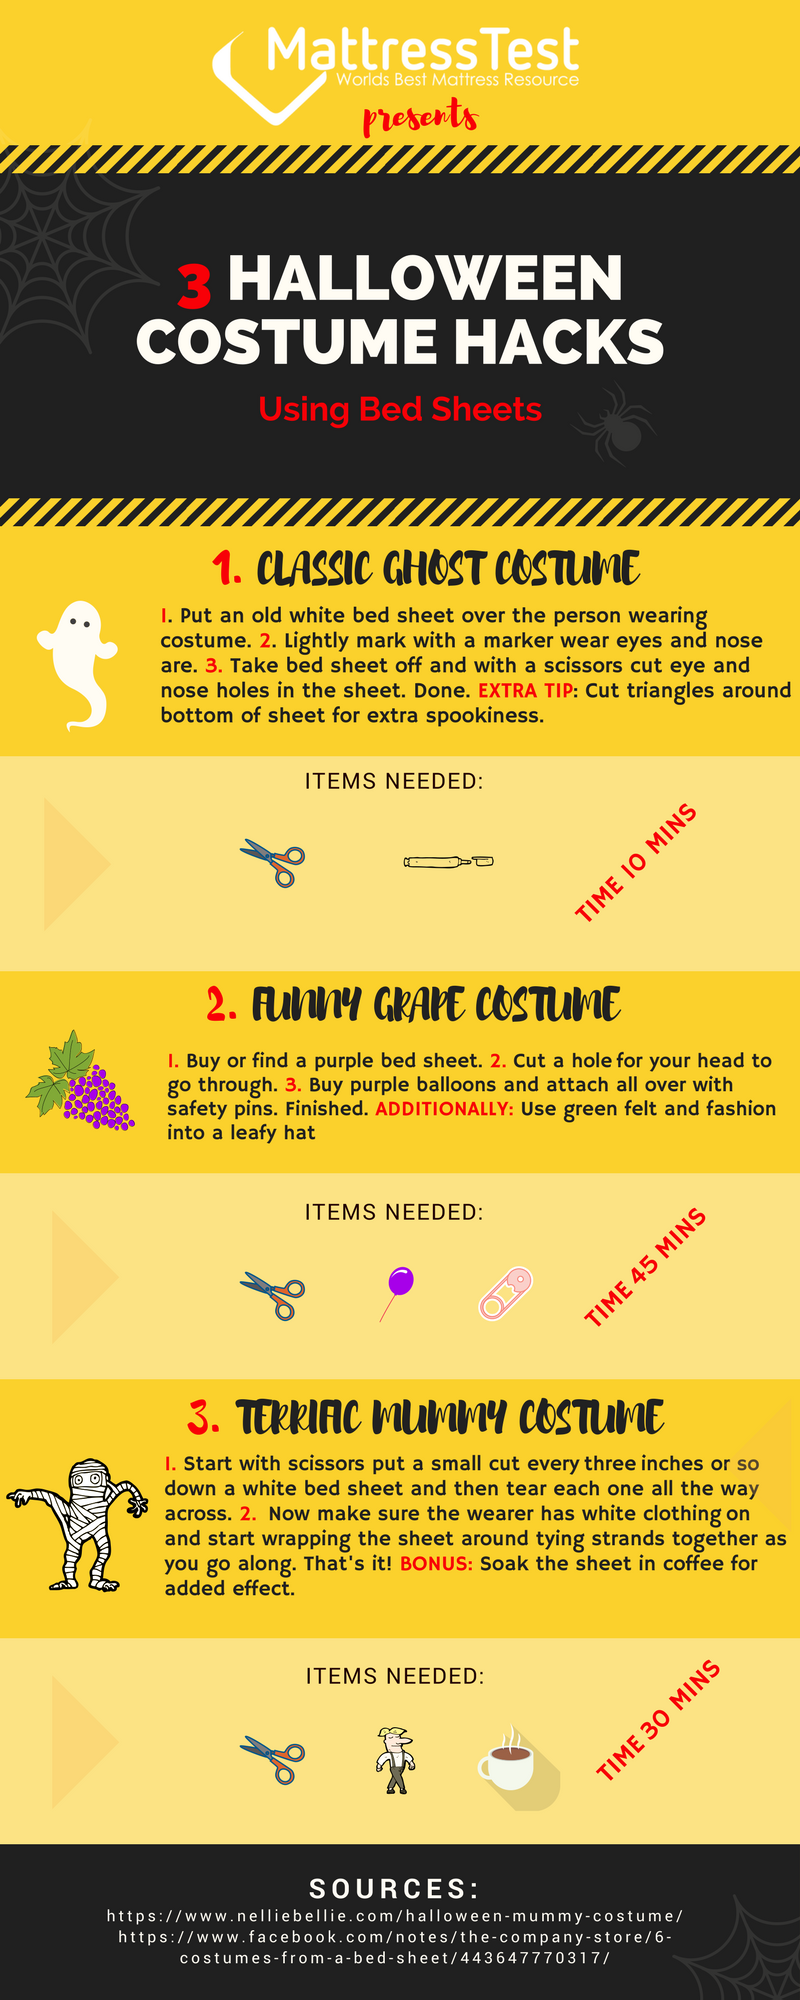 Infographic 3 Halloween Costume Hacks Using Bed Sheets